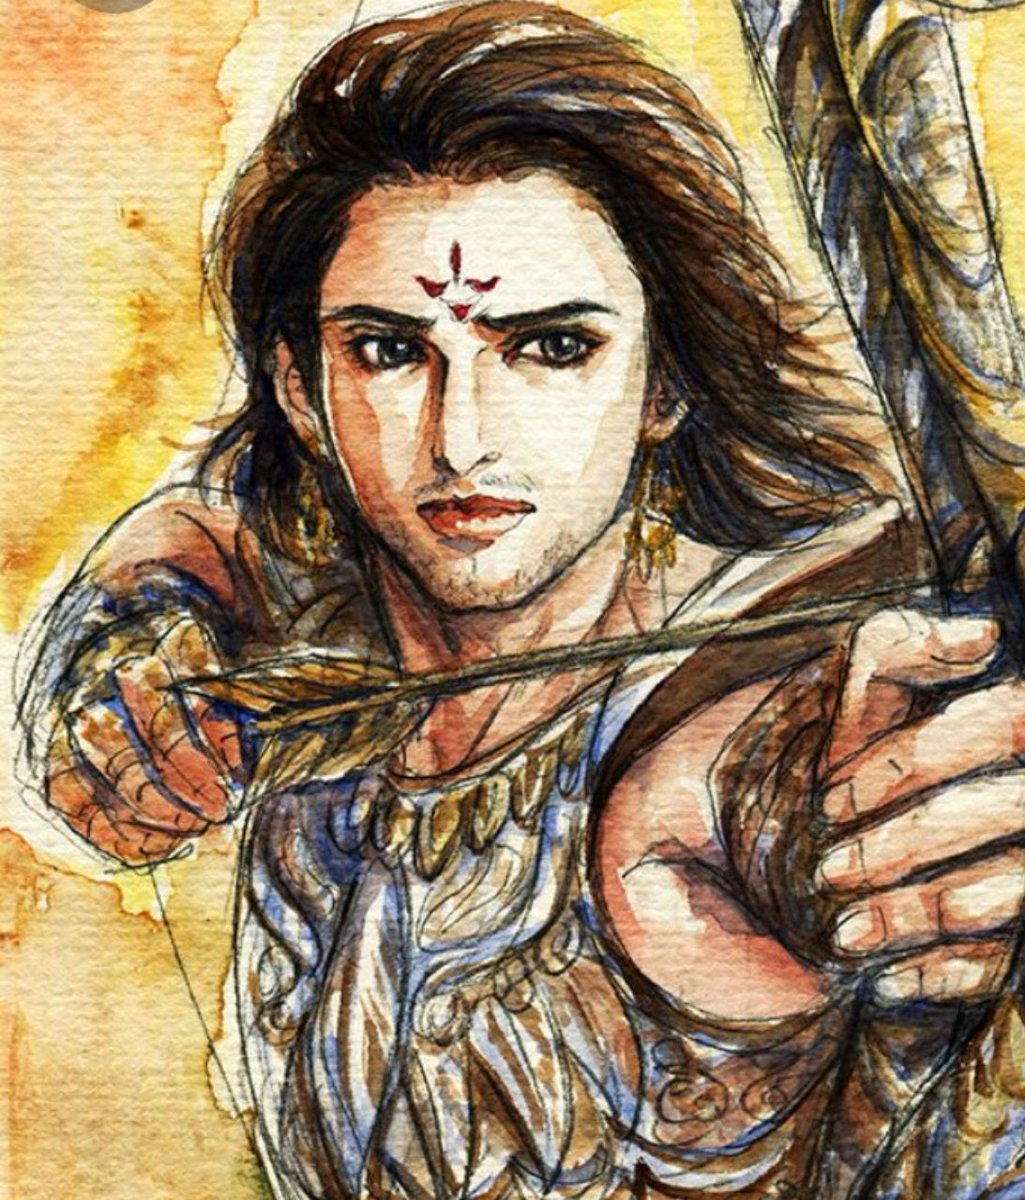 #Small_Thread #Karna  #Mahabharata   Today We will look briefly into Mahabharata and try to verify the claims that Drona discriminated with Karna due to his caste.  Do Follow and Share this thread as this will bust the myths propagated to malign the 5600 BCE India.